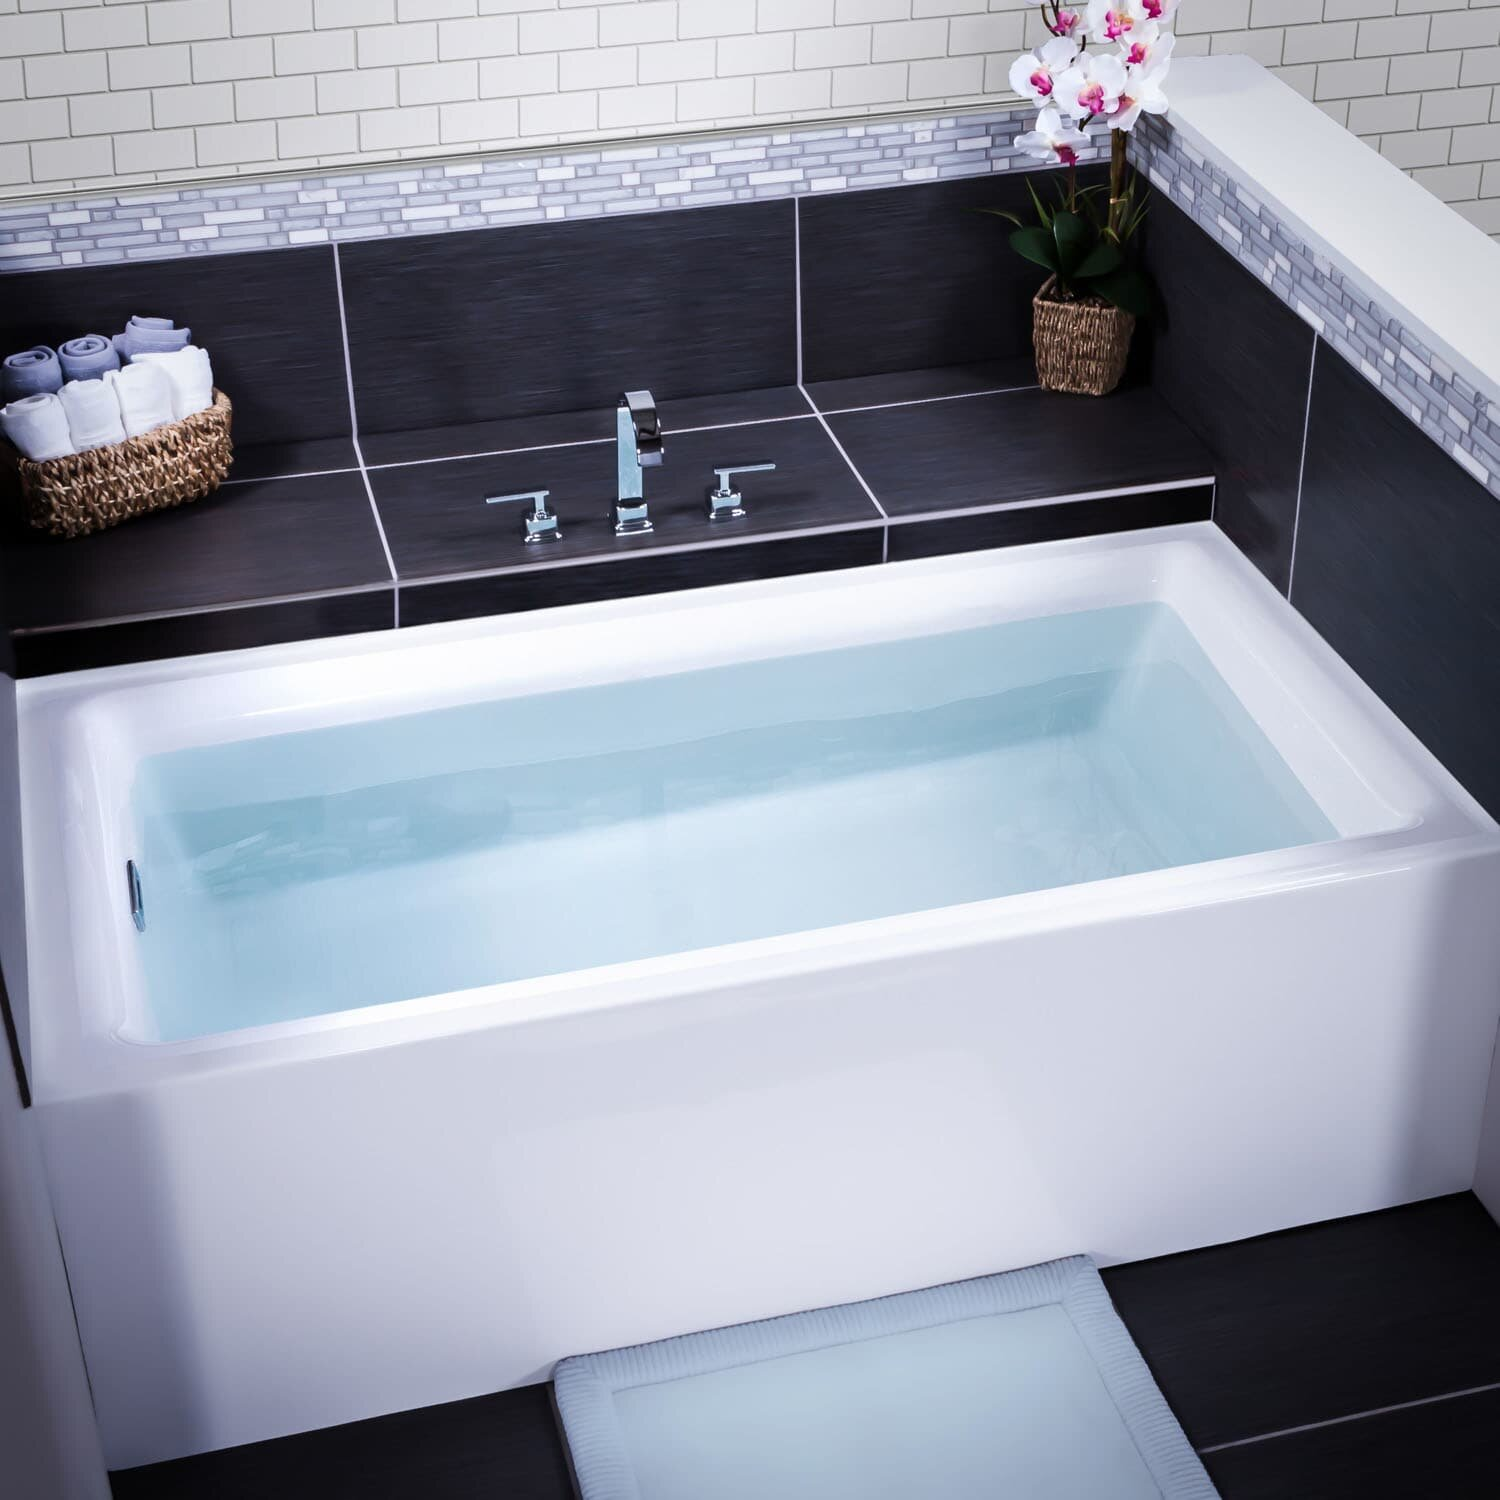 Contemporary Bathtub 60 X 30 Picture Collection - Bathtub Design ...